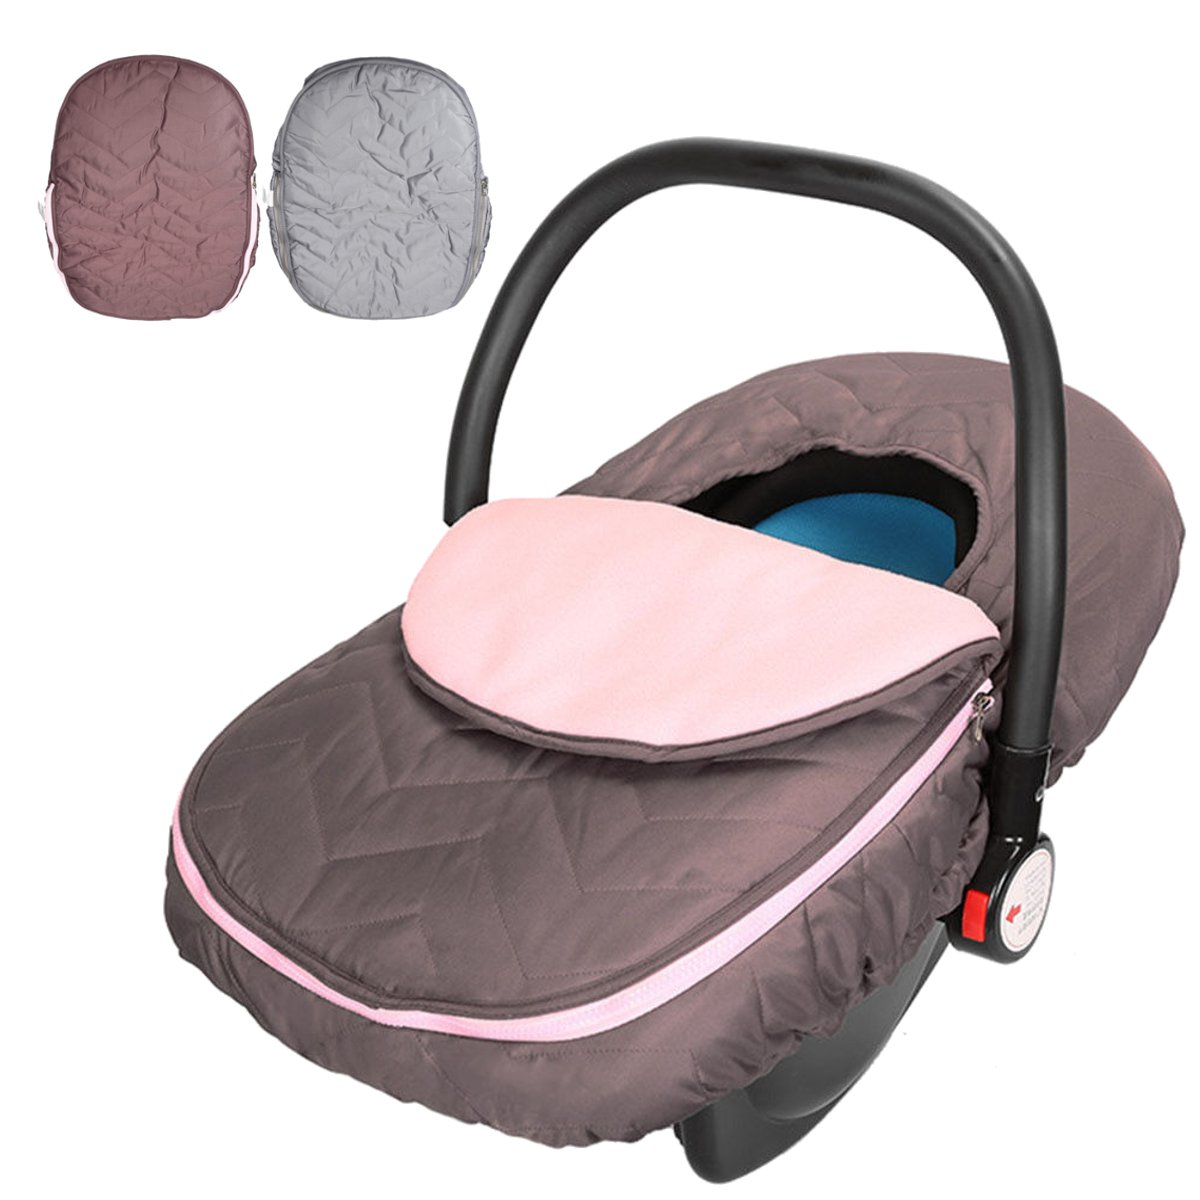 Universal Newborn Infant Car Seat Cover Polyester Travel